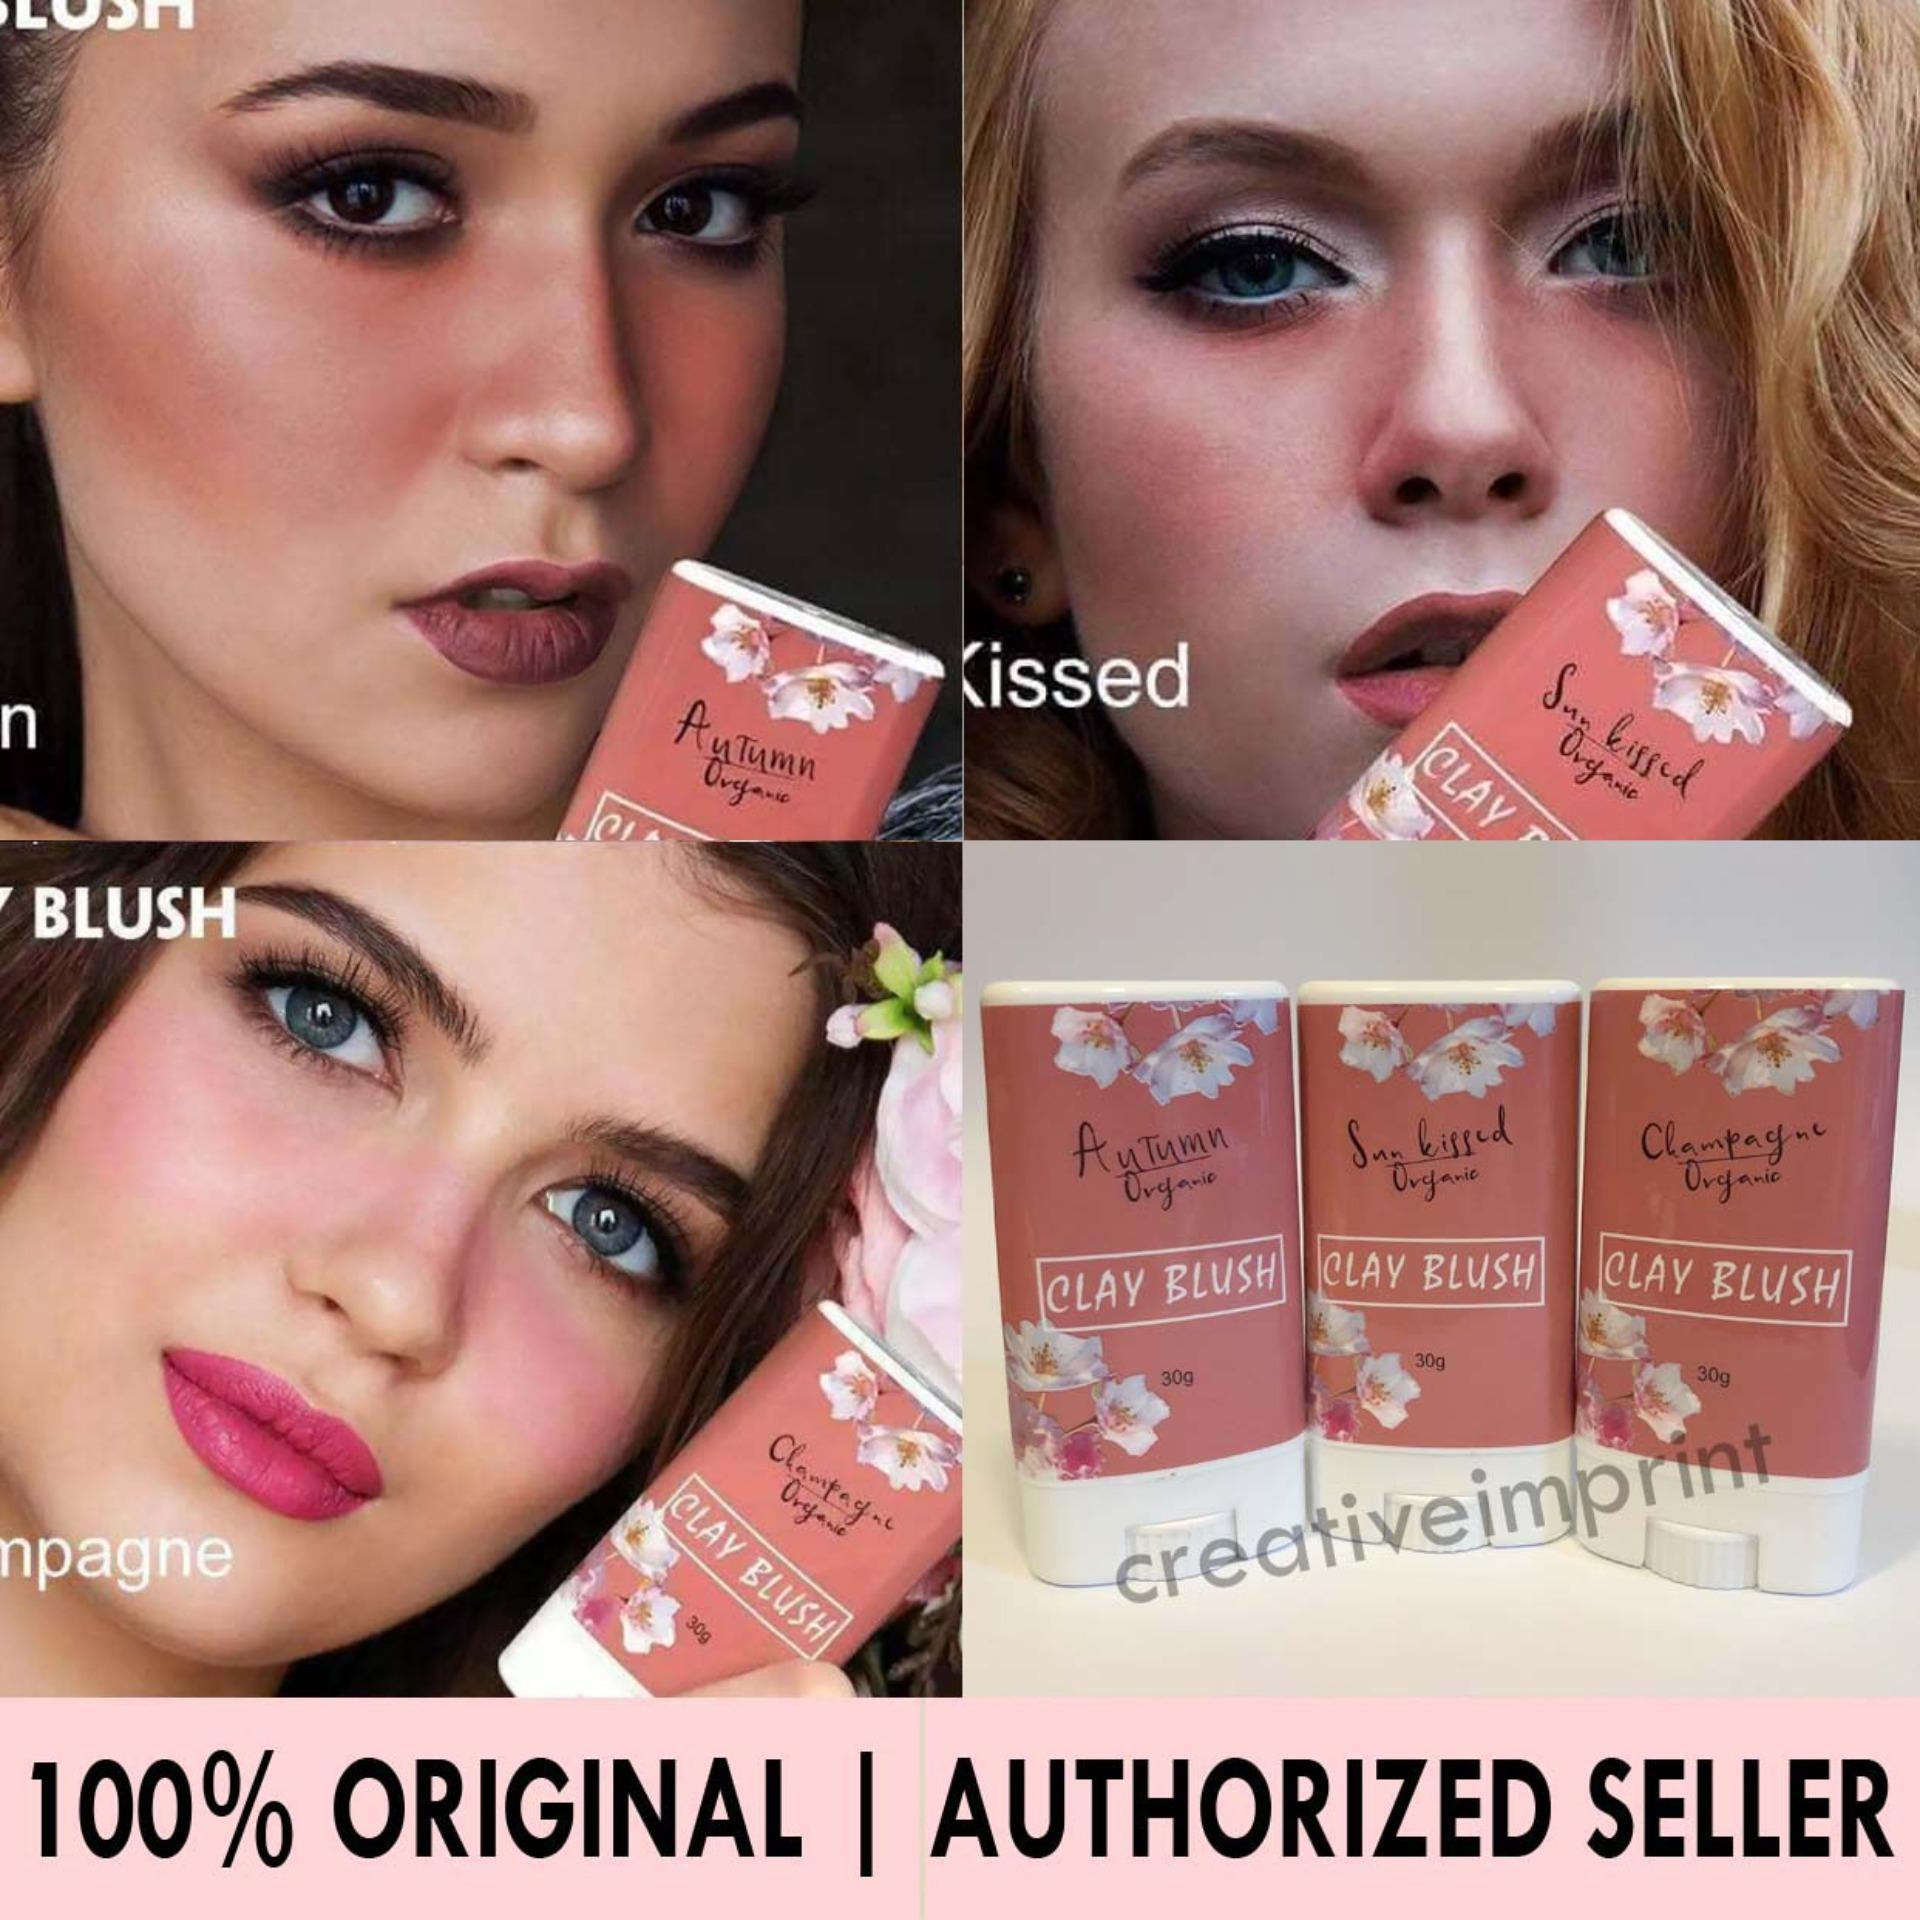 Authentic Clay Blush Organics 100% Original Fda Approved Vegan Korean Make Up Dewy Look Highly Pigmented 30grams By Creative Imprint.